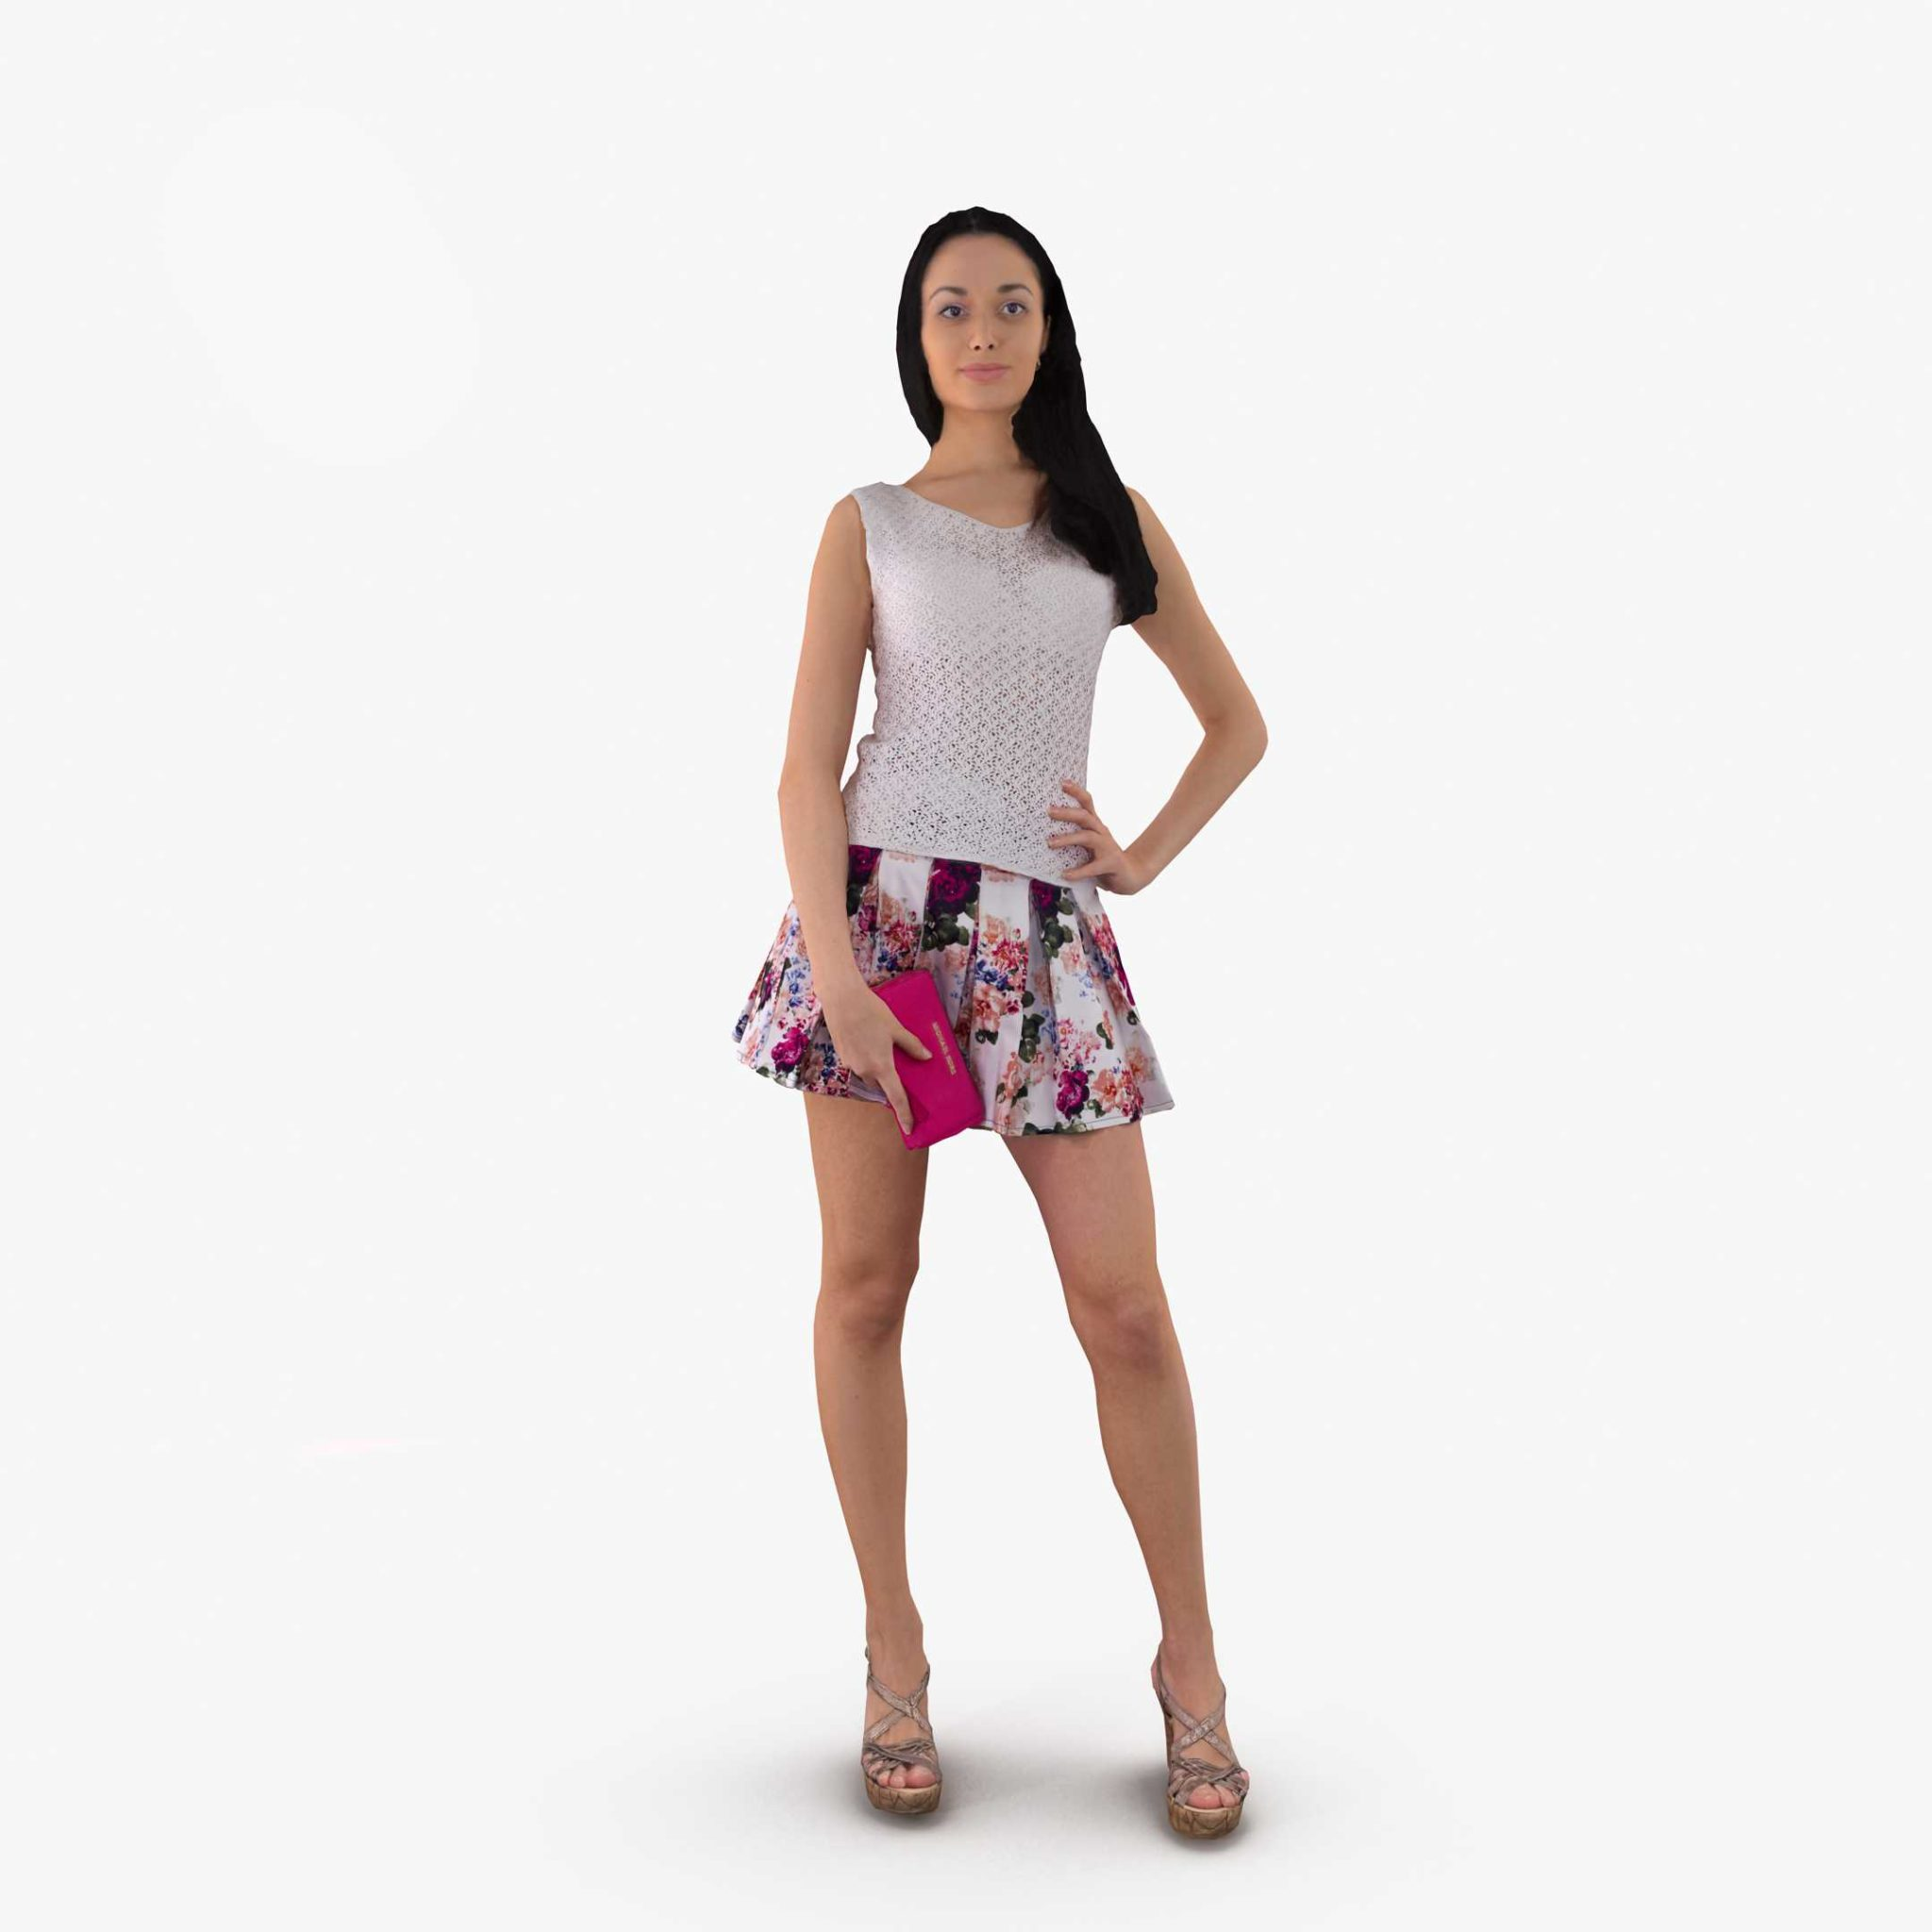 Woman Posed 3D Model | 3DTree Scanning Studio